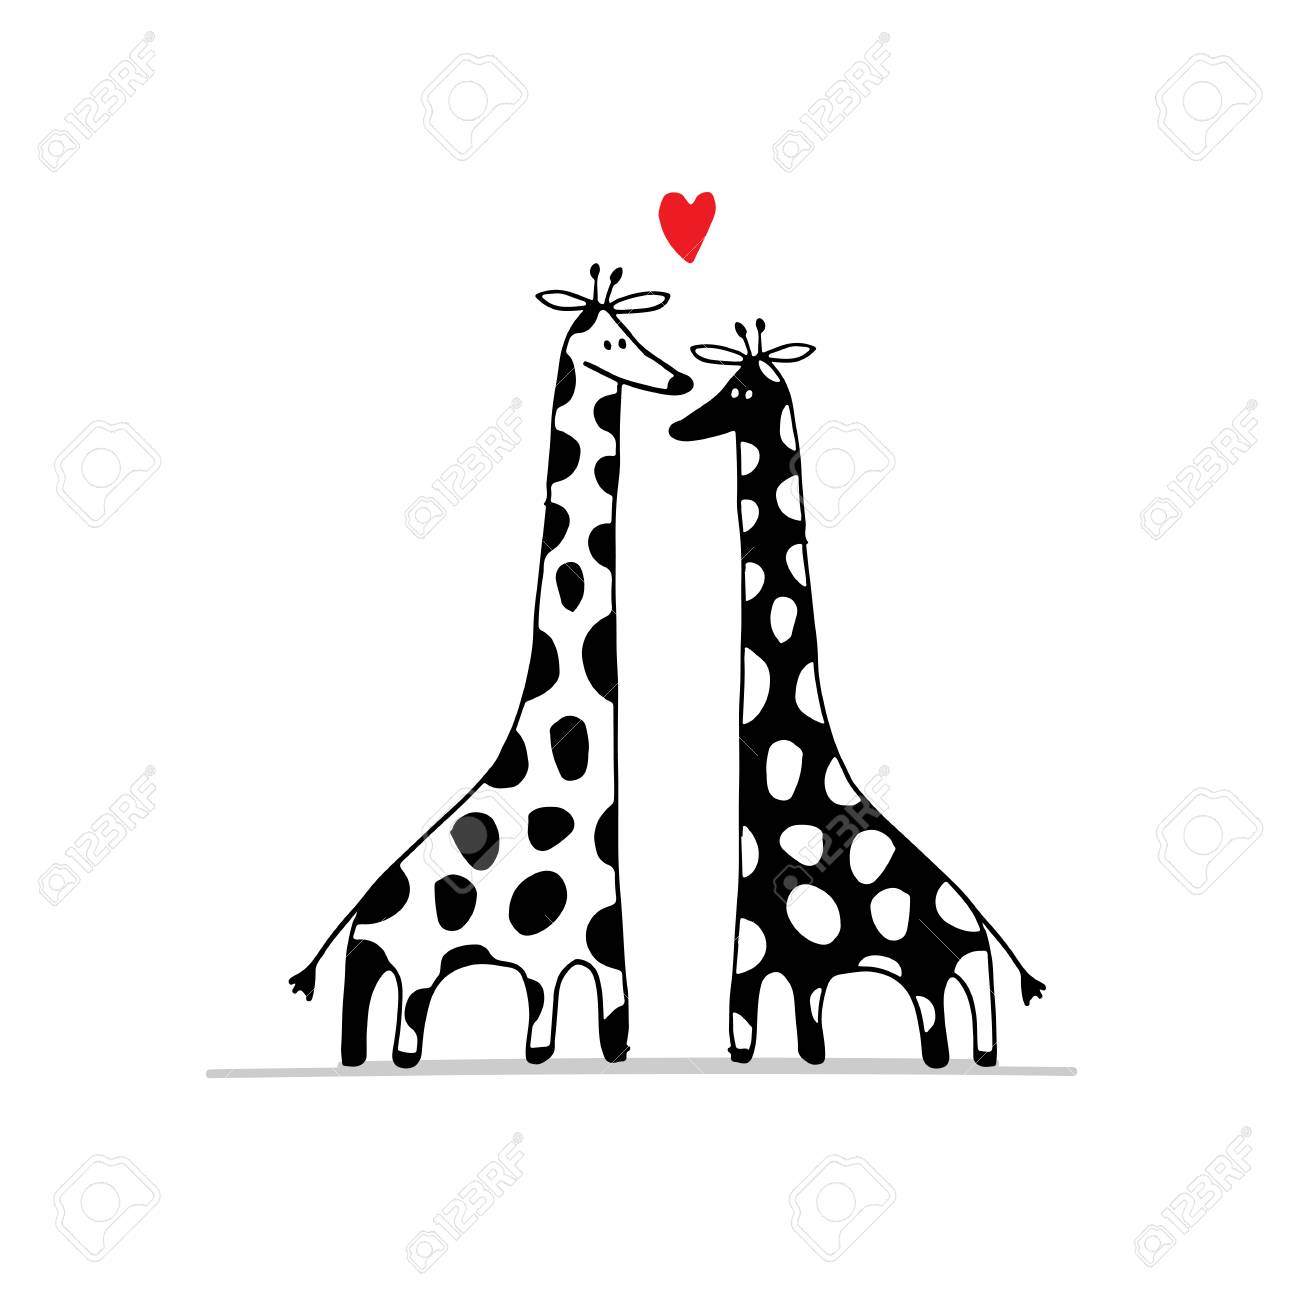 1300x1300 Giraffes Couple In Love, Sketch For Your Design. Illustration